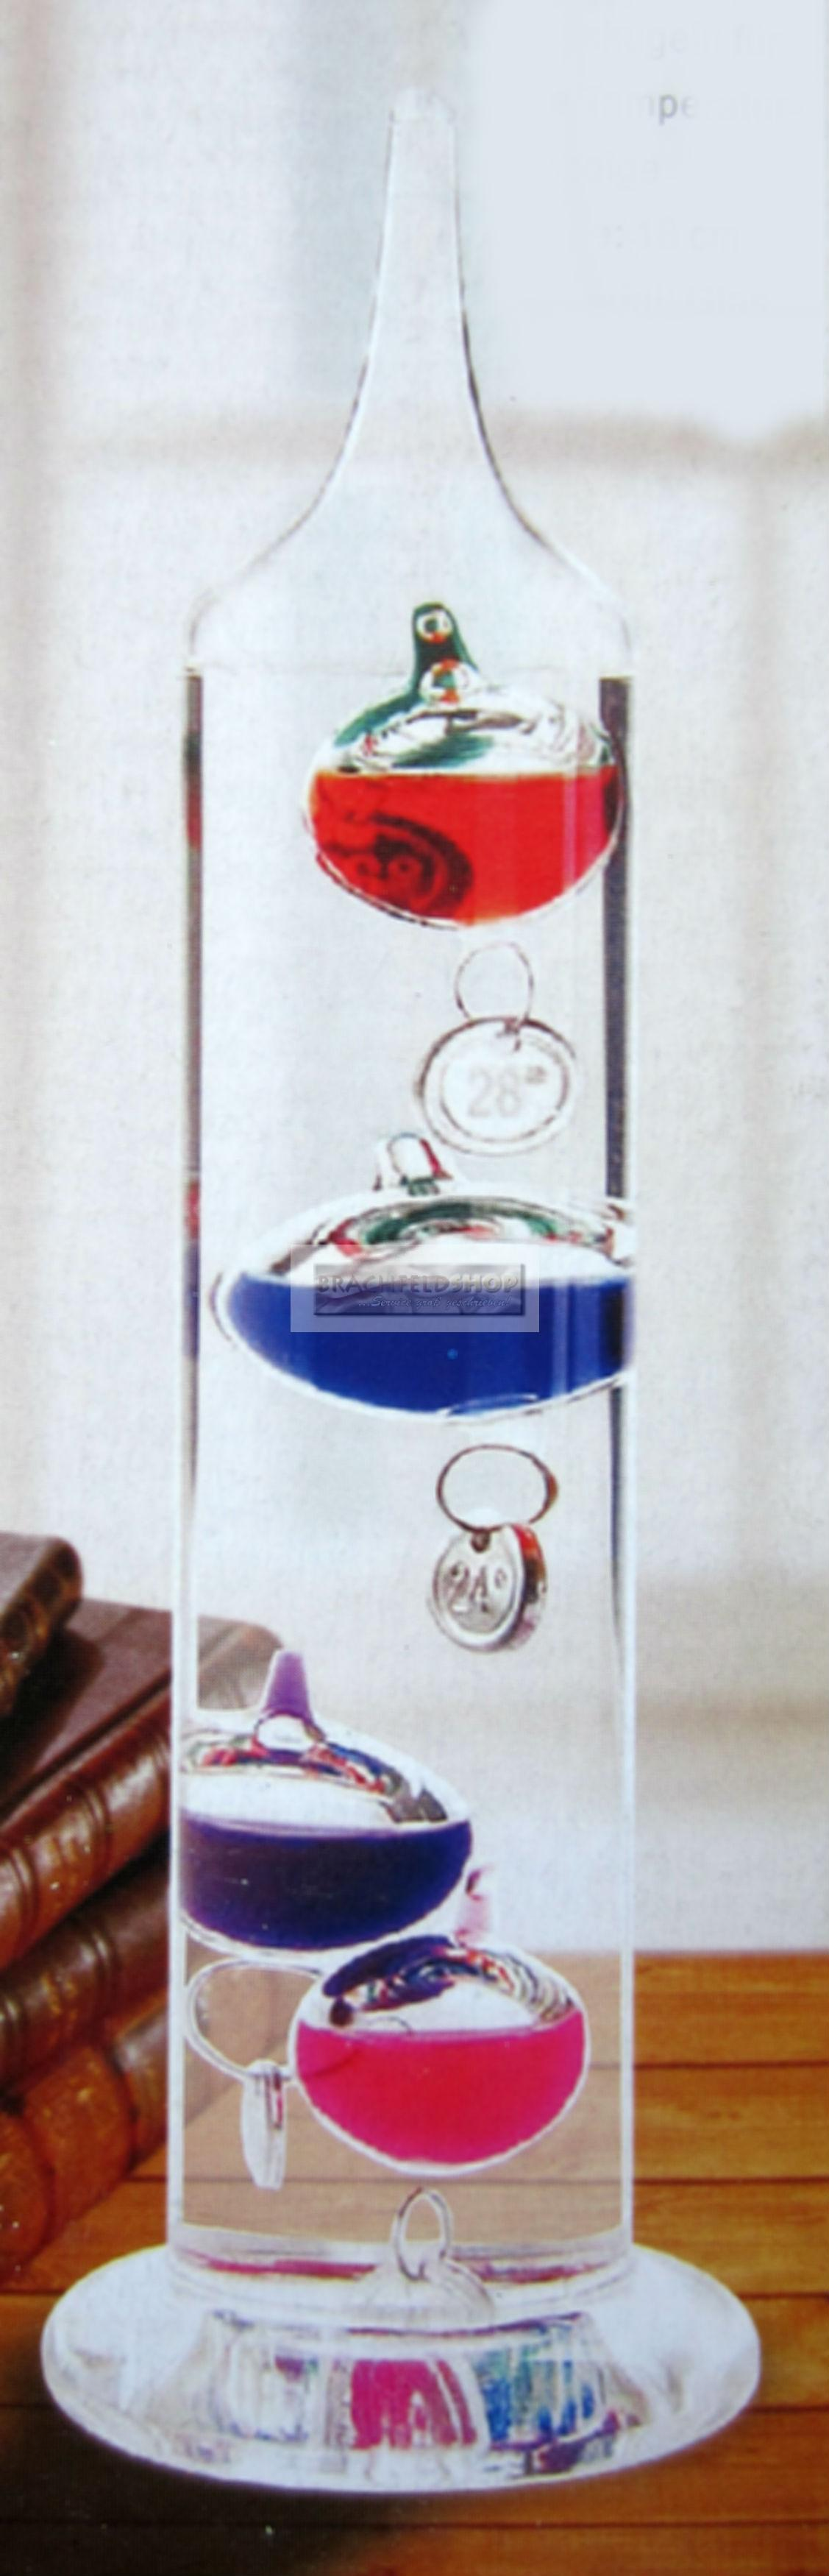 galileo thermometer fl ssigkeitsthermometer. Black Bedroom Furniture Sets. Home Design Ideas